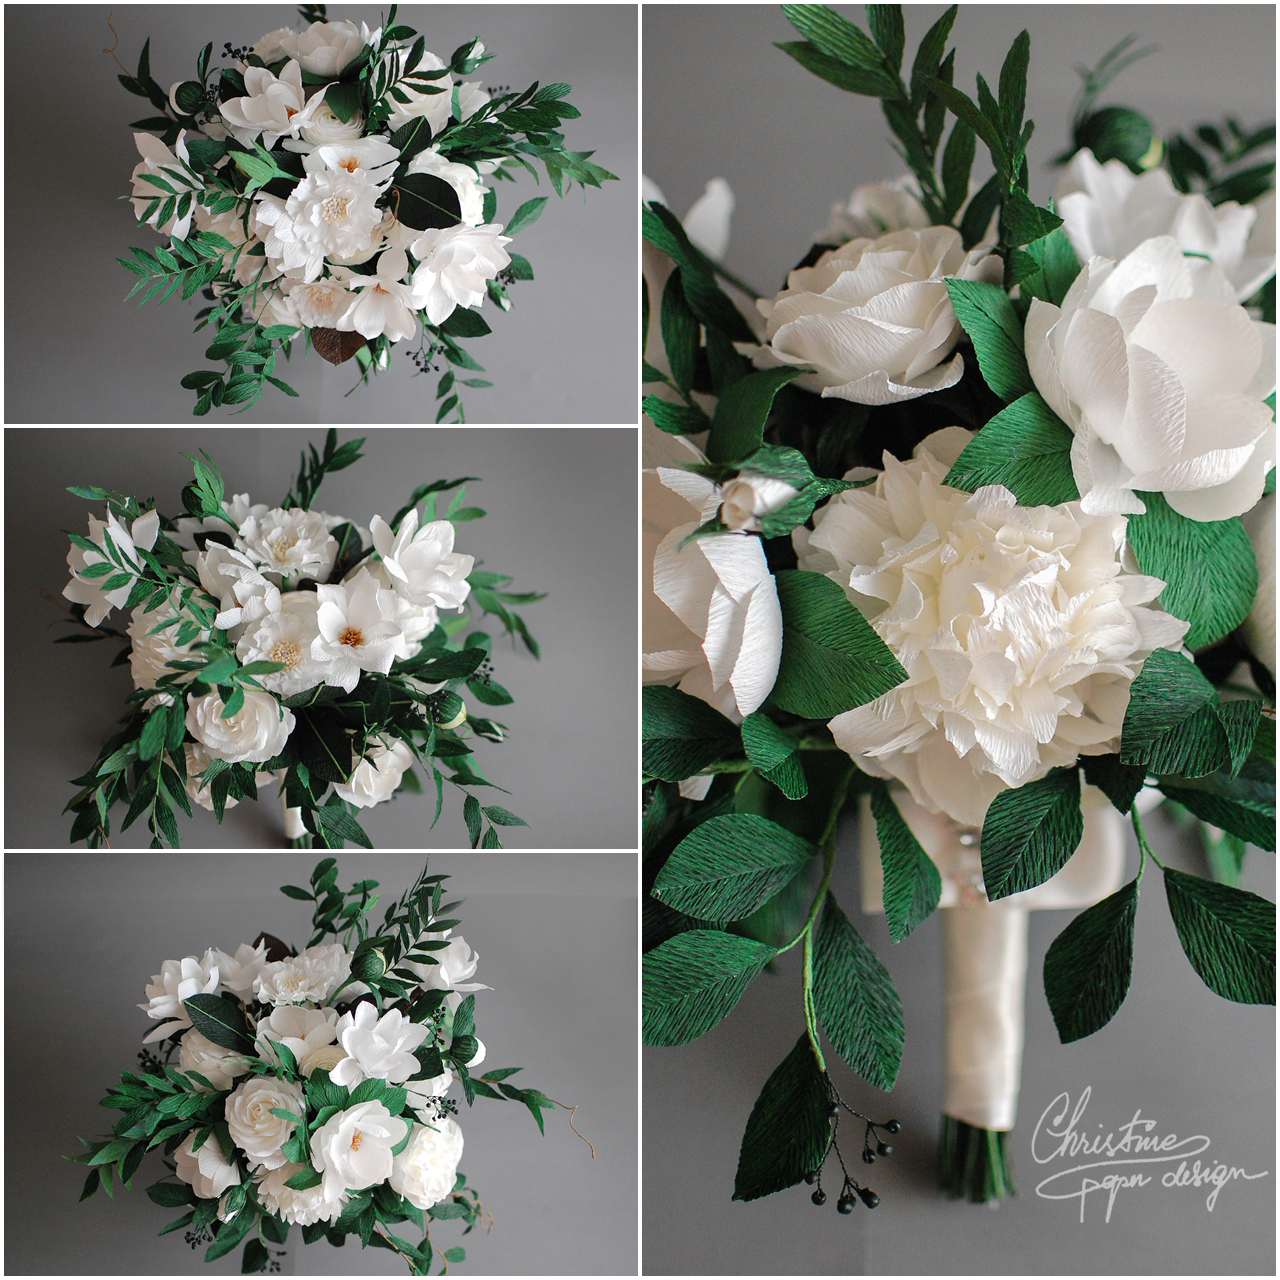 white and green bridal bouquet2 - Christinepaperdesign